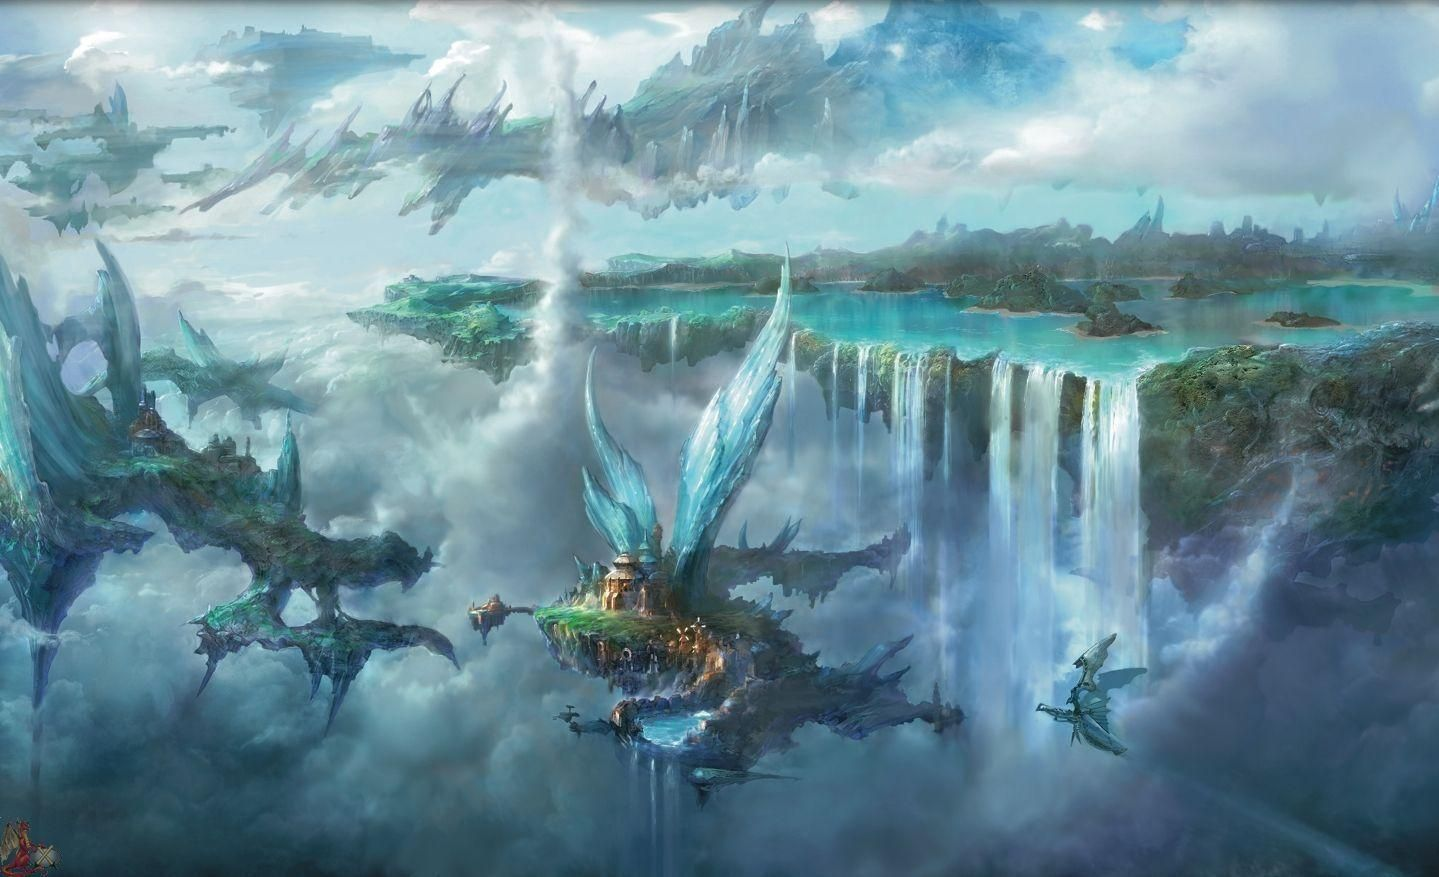 Hd Final Fantasy Wallpapers Wallpaper Cave Phong Cảnh Otaku Canh